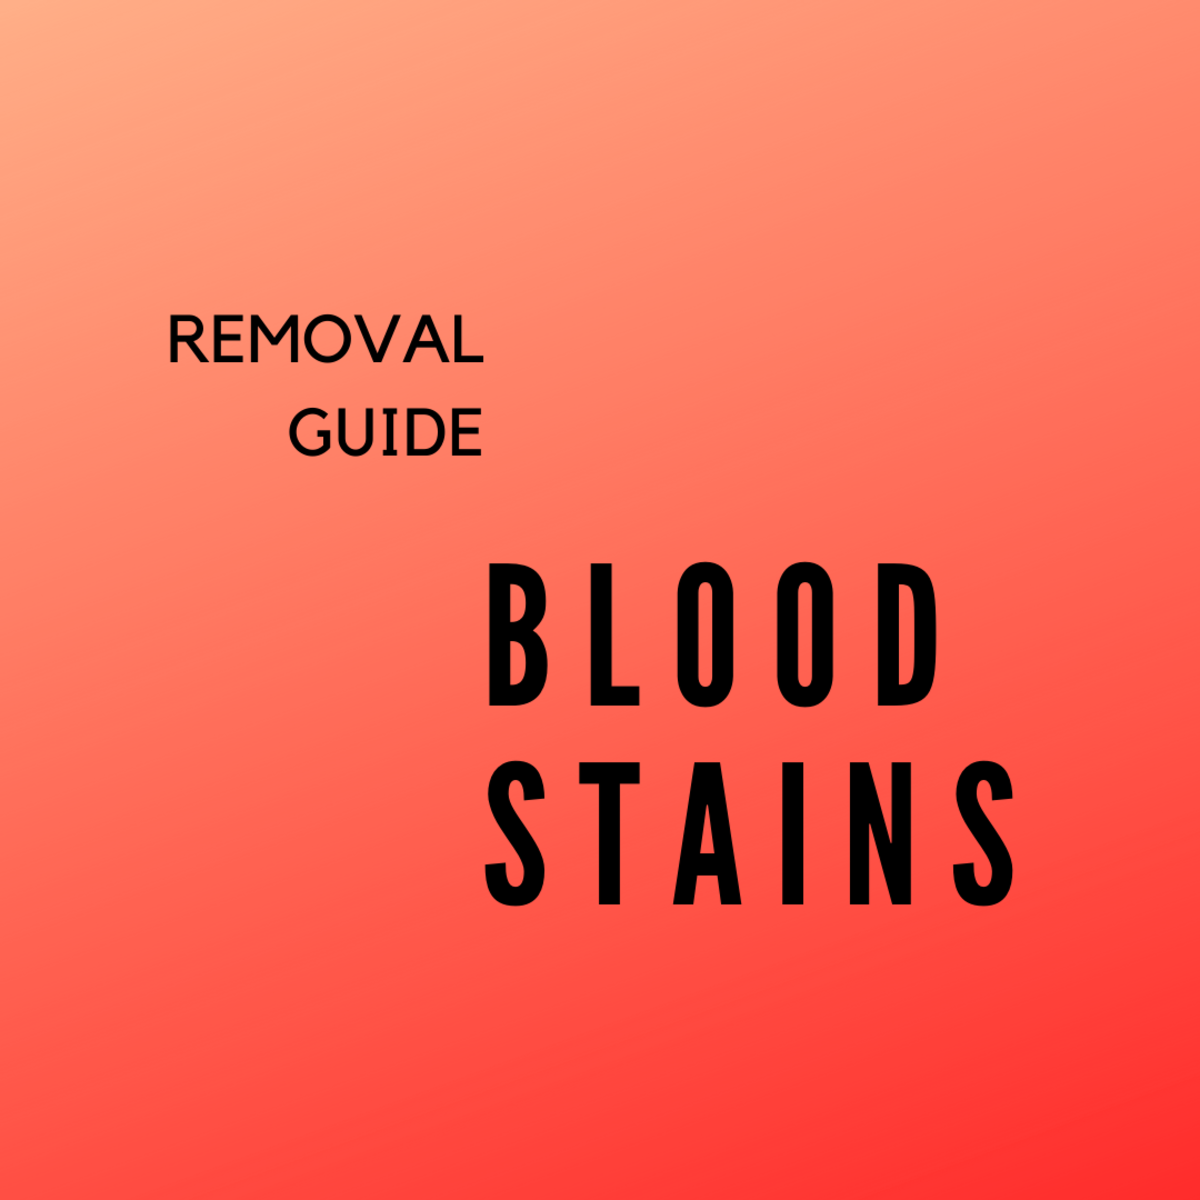 Blood stains are notoriously difficult to remove.